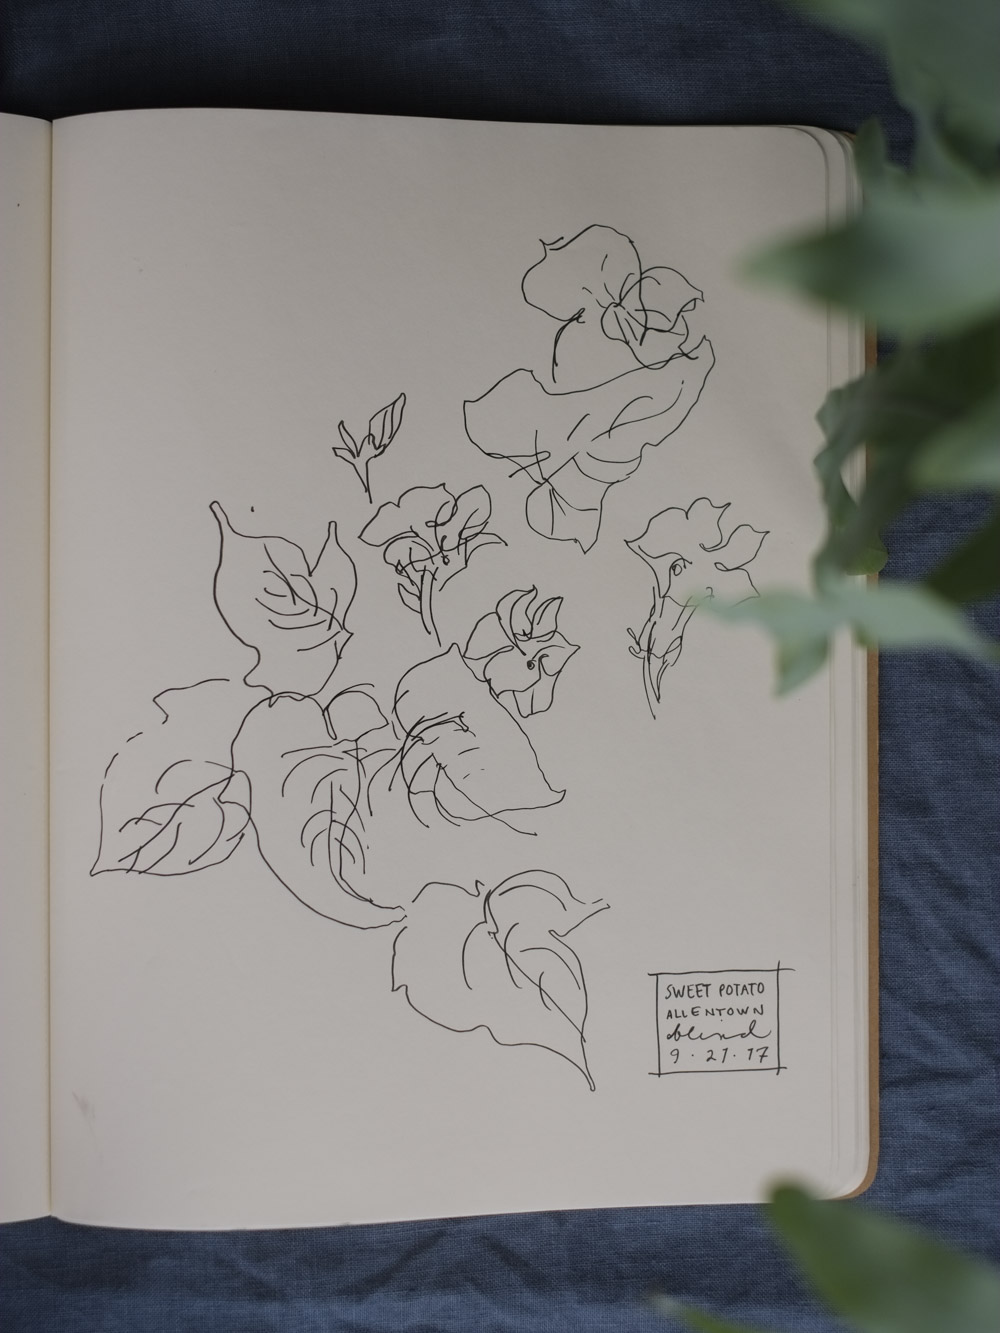 Erin_Ellis_daily_botanical_blind_drawings_sept_2017.jpg-25.jpg